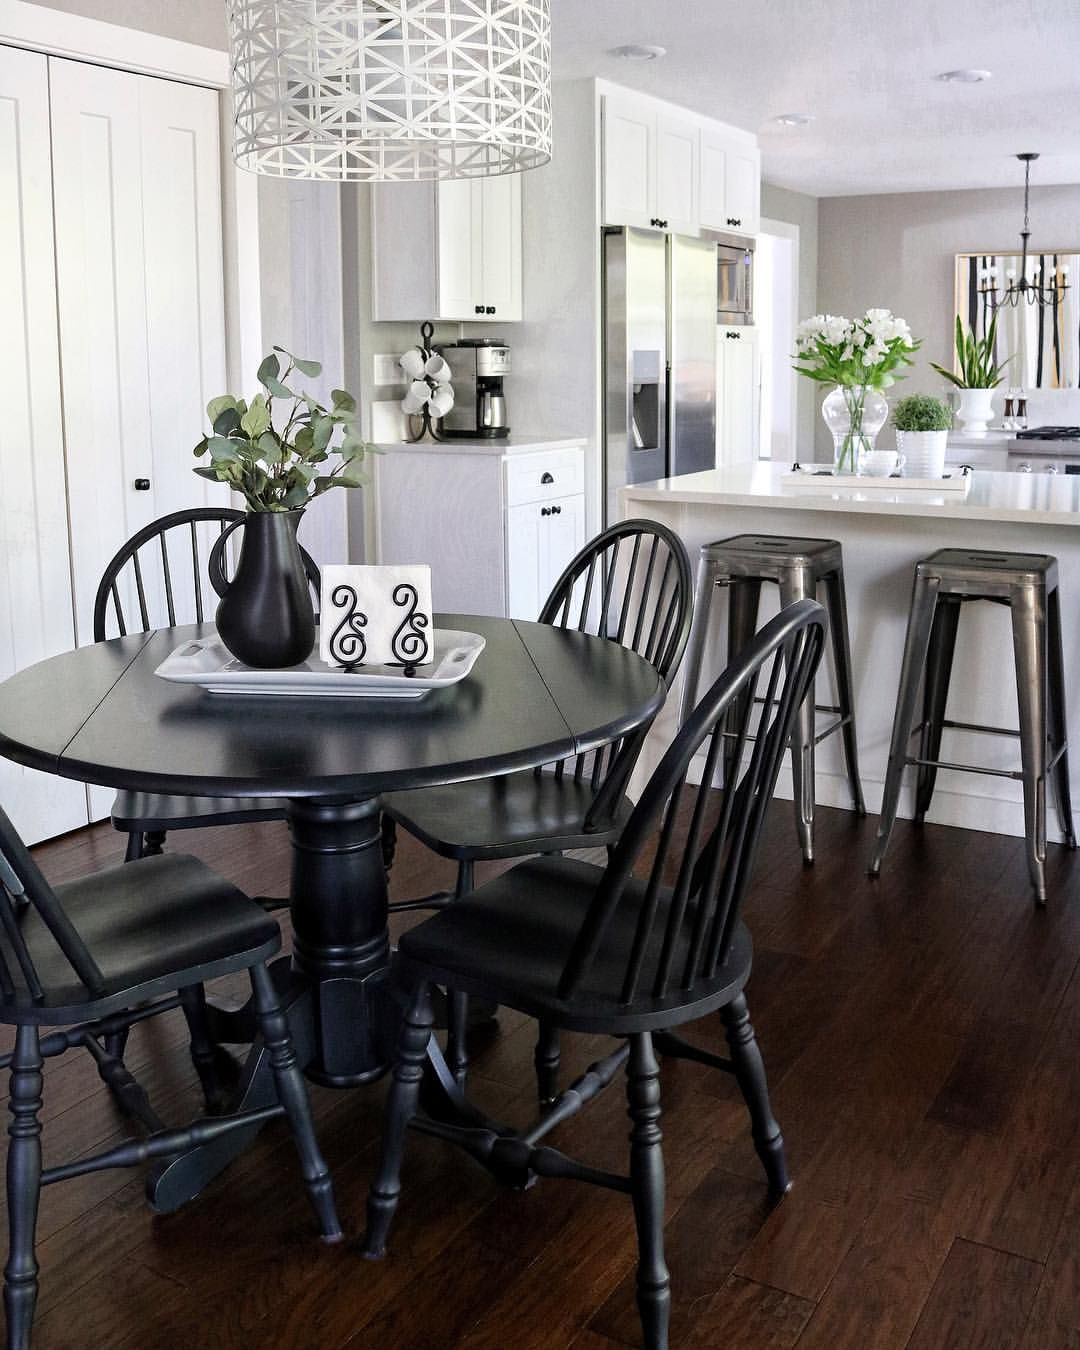 White Kitchen With Eat In Area Black Table Black Kitchen Table